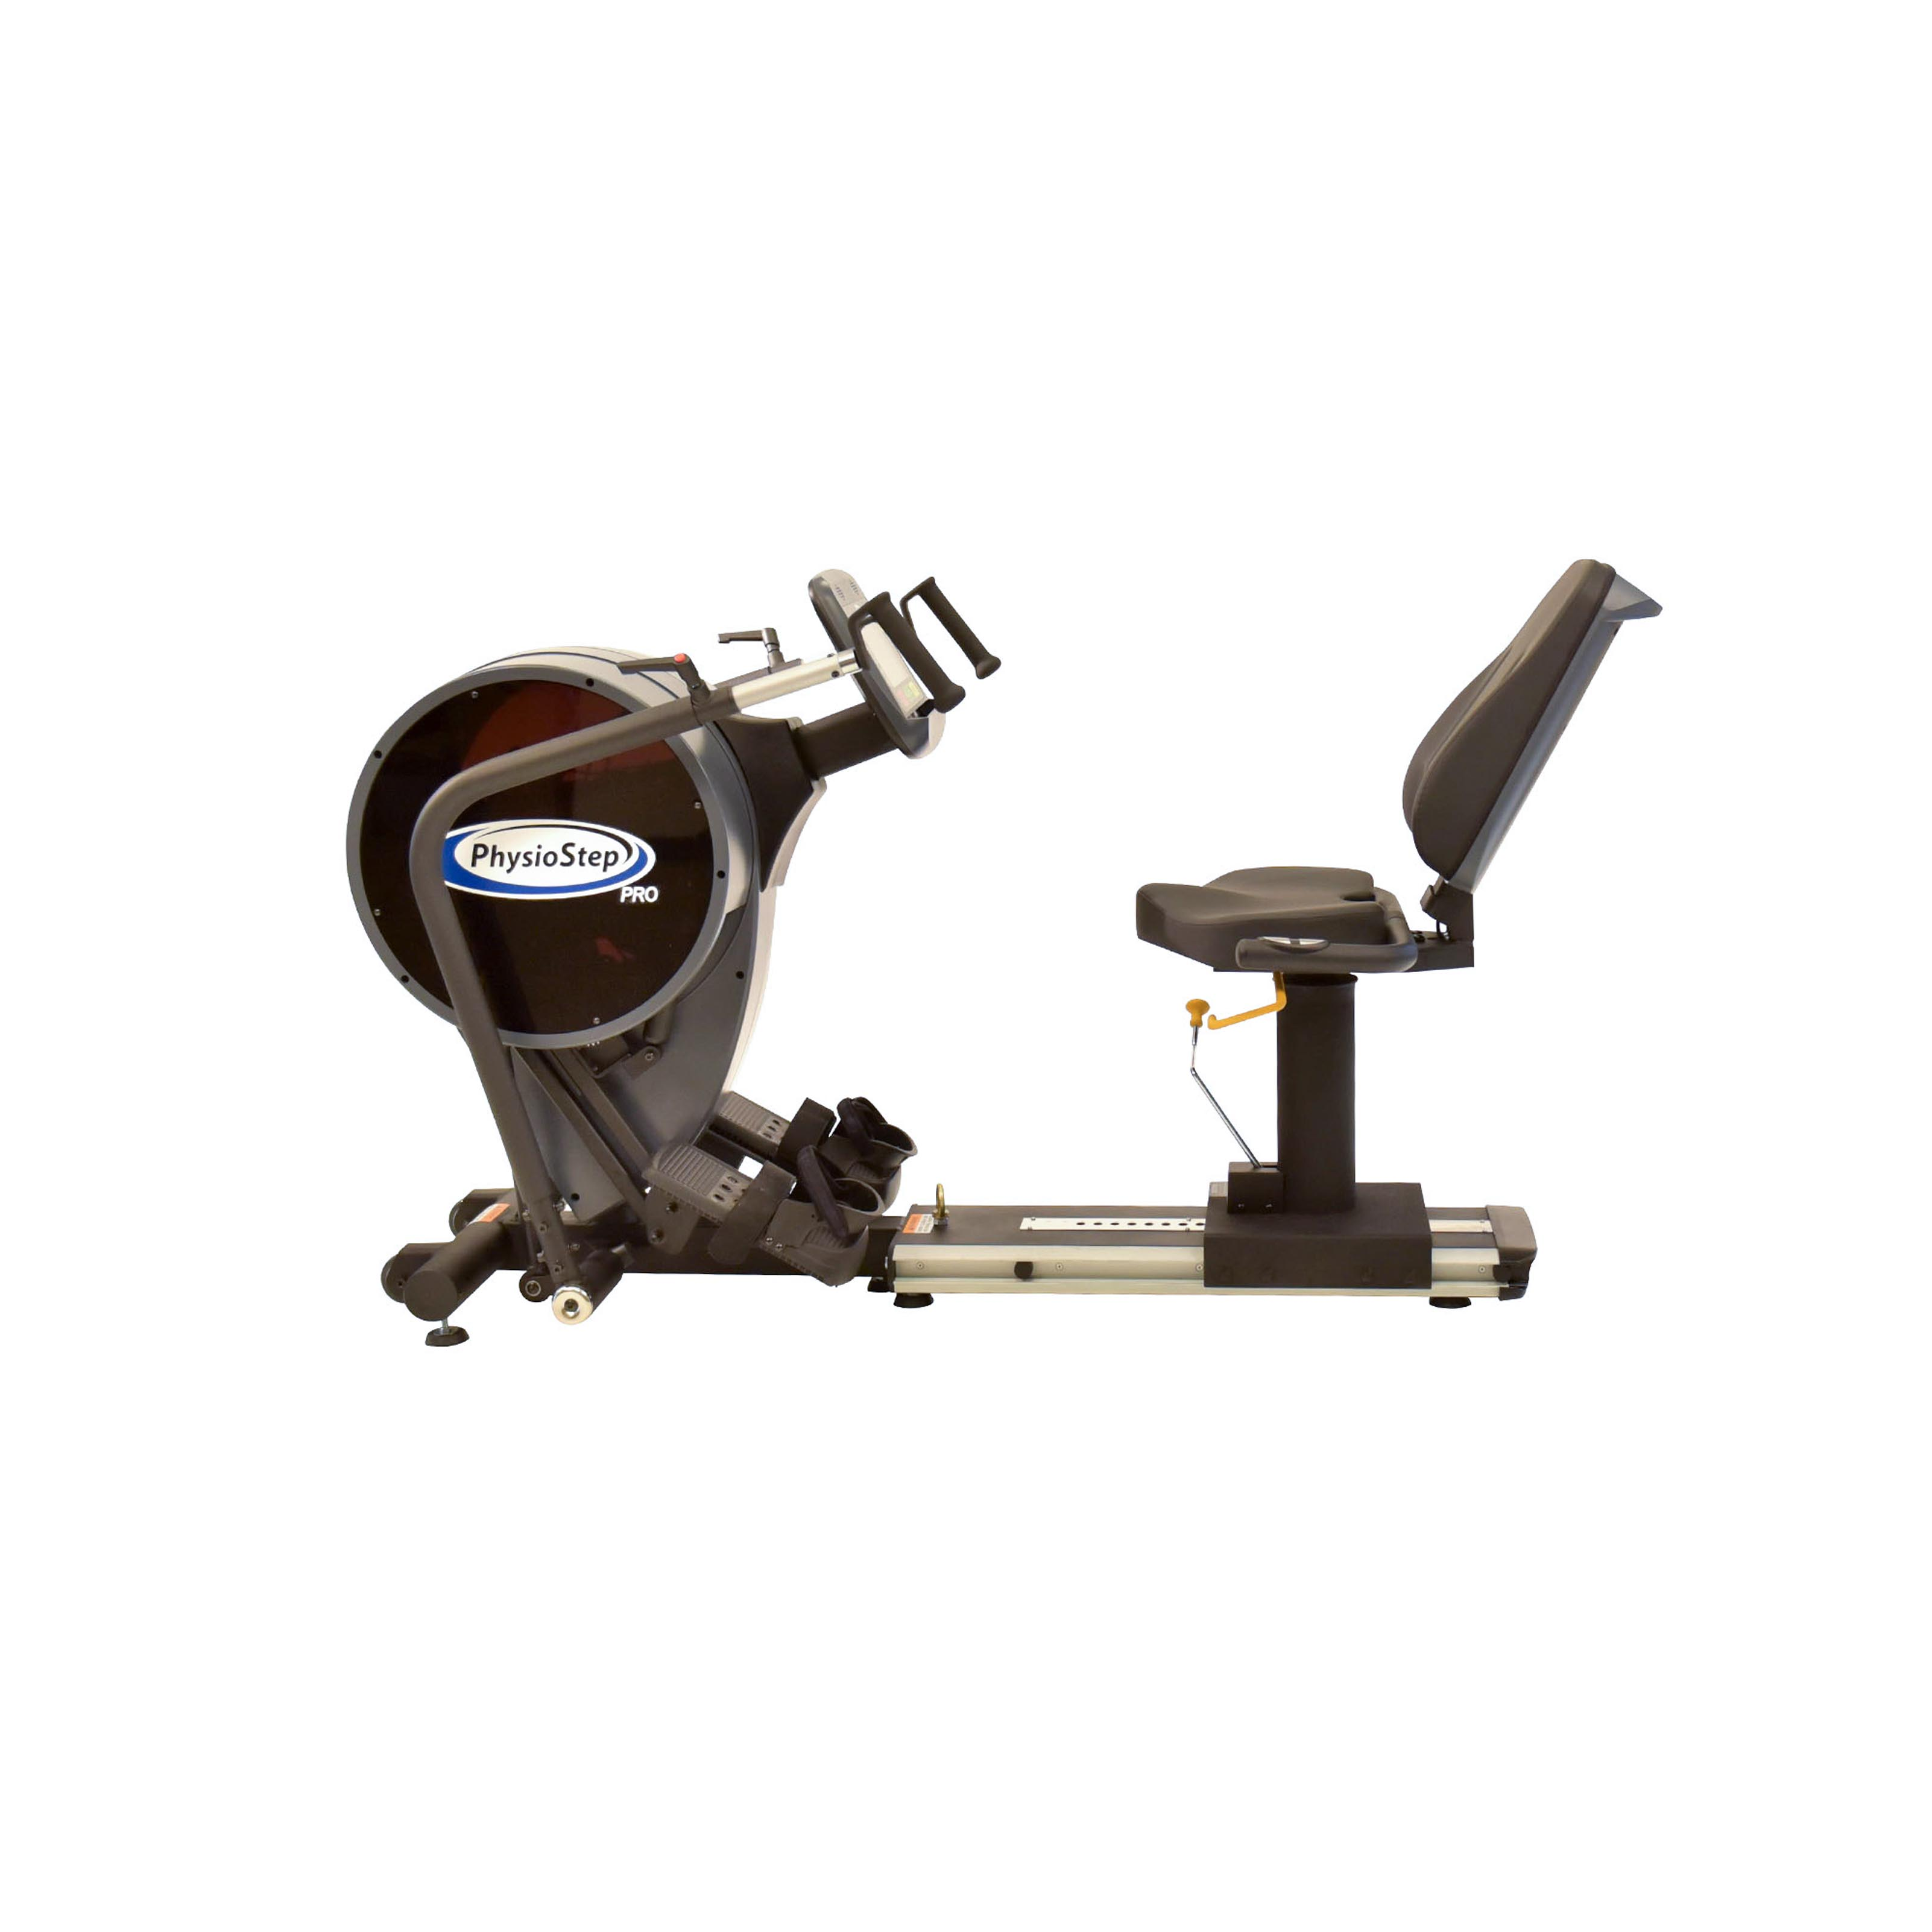 PhysioStep PRO Recumbent Stepper Cross Trainer